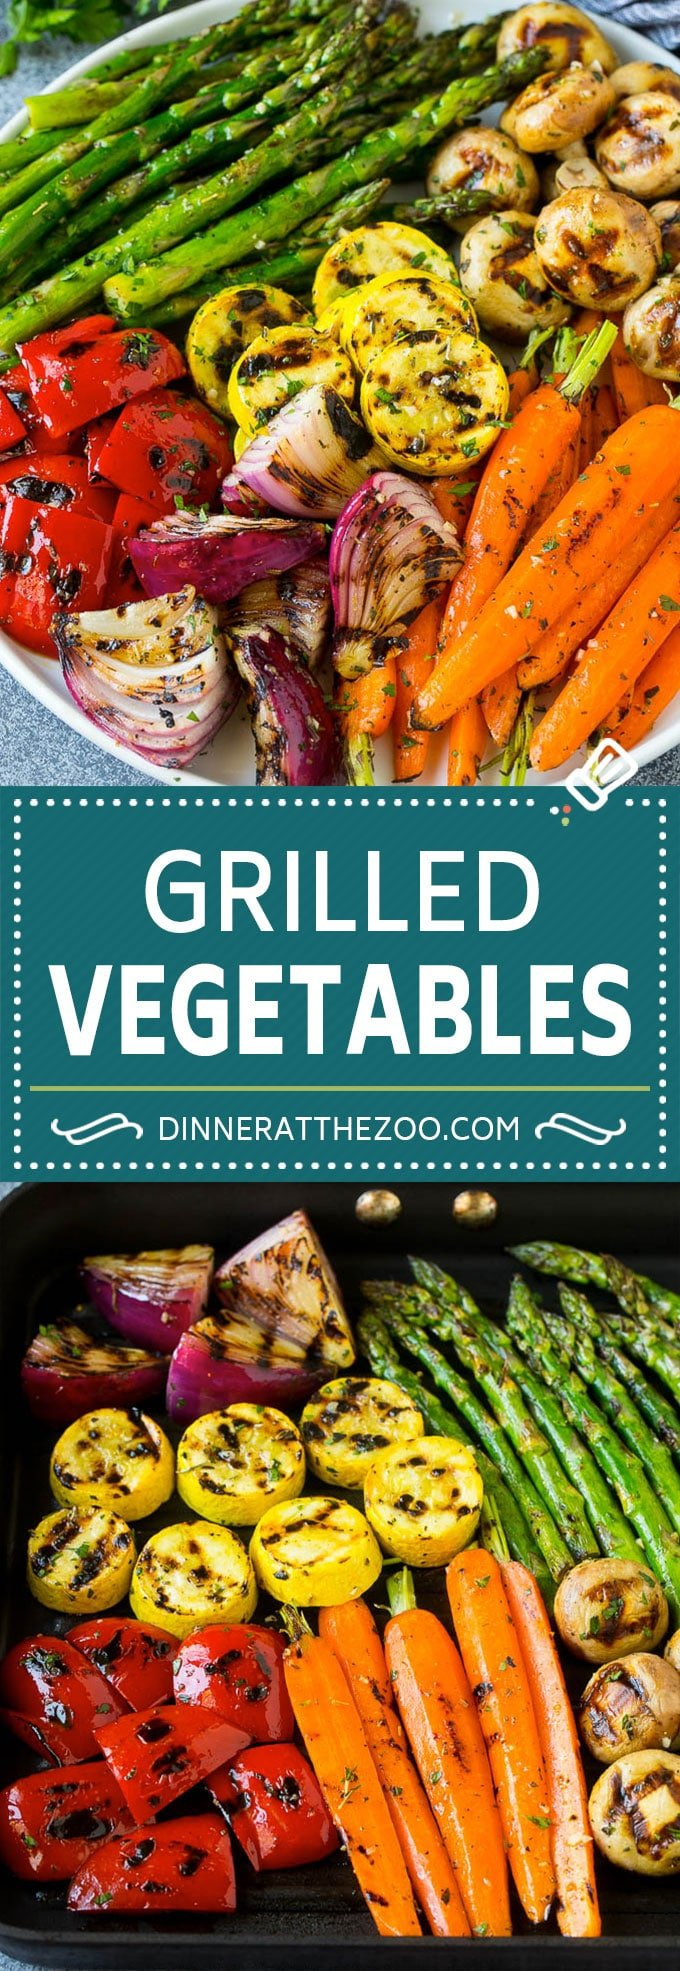 Grilled Vegetables Recipe | Marinated Vegetables | Grilled Veggies #vegetables #veggies #grilling #glutenfree #lowcarb #keto #dinner #dinneratthezoo #cleaneating #healthy